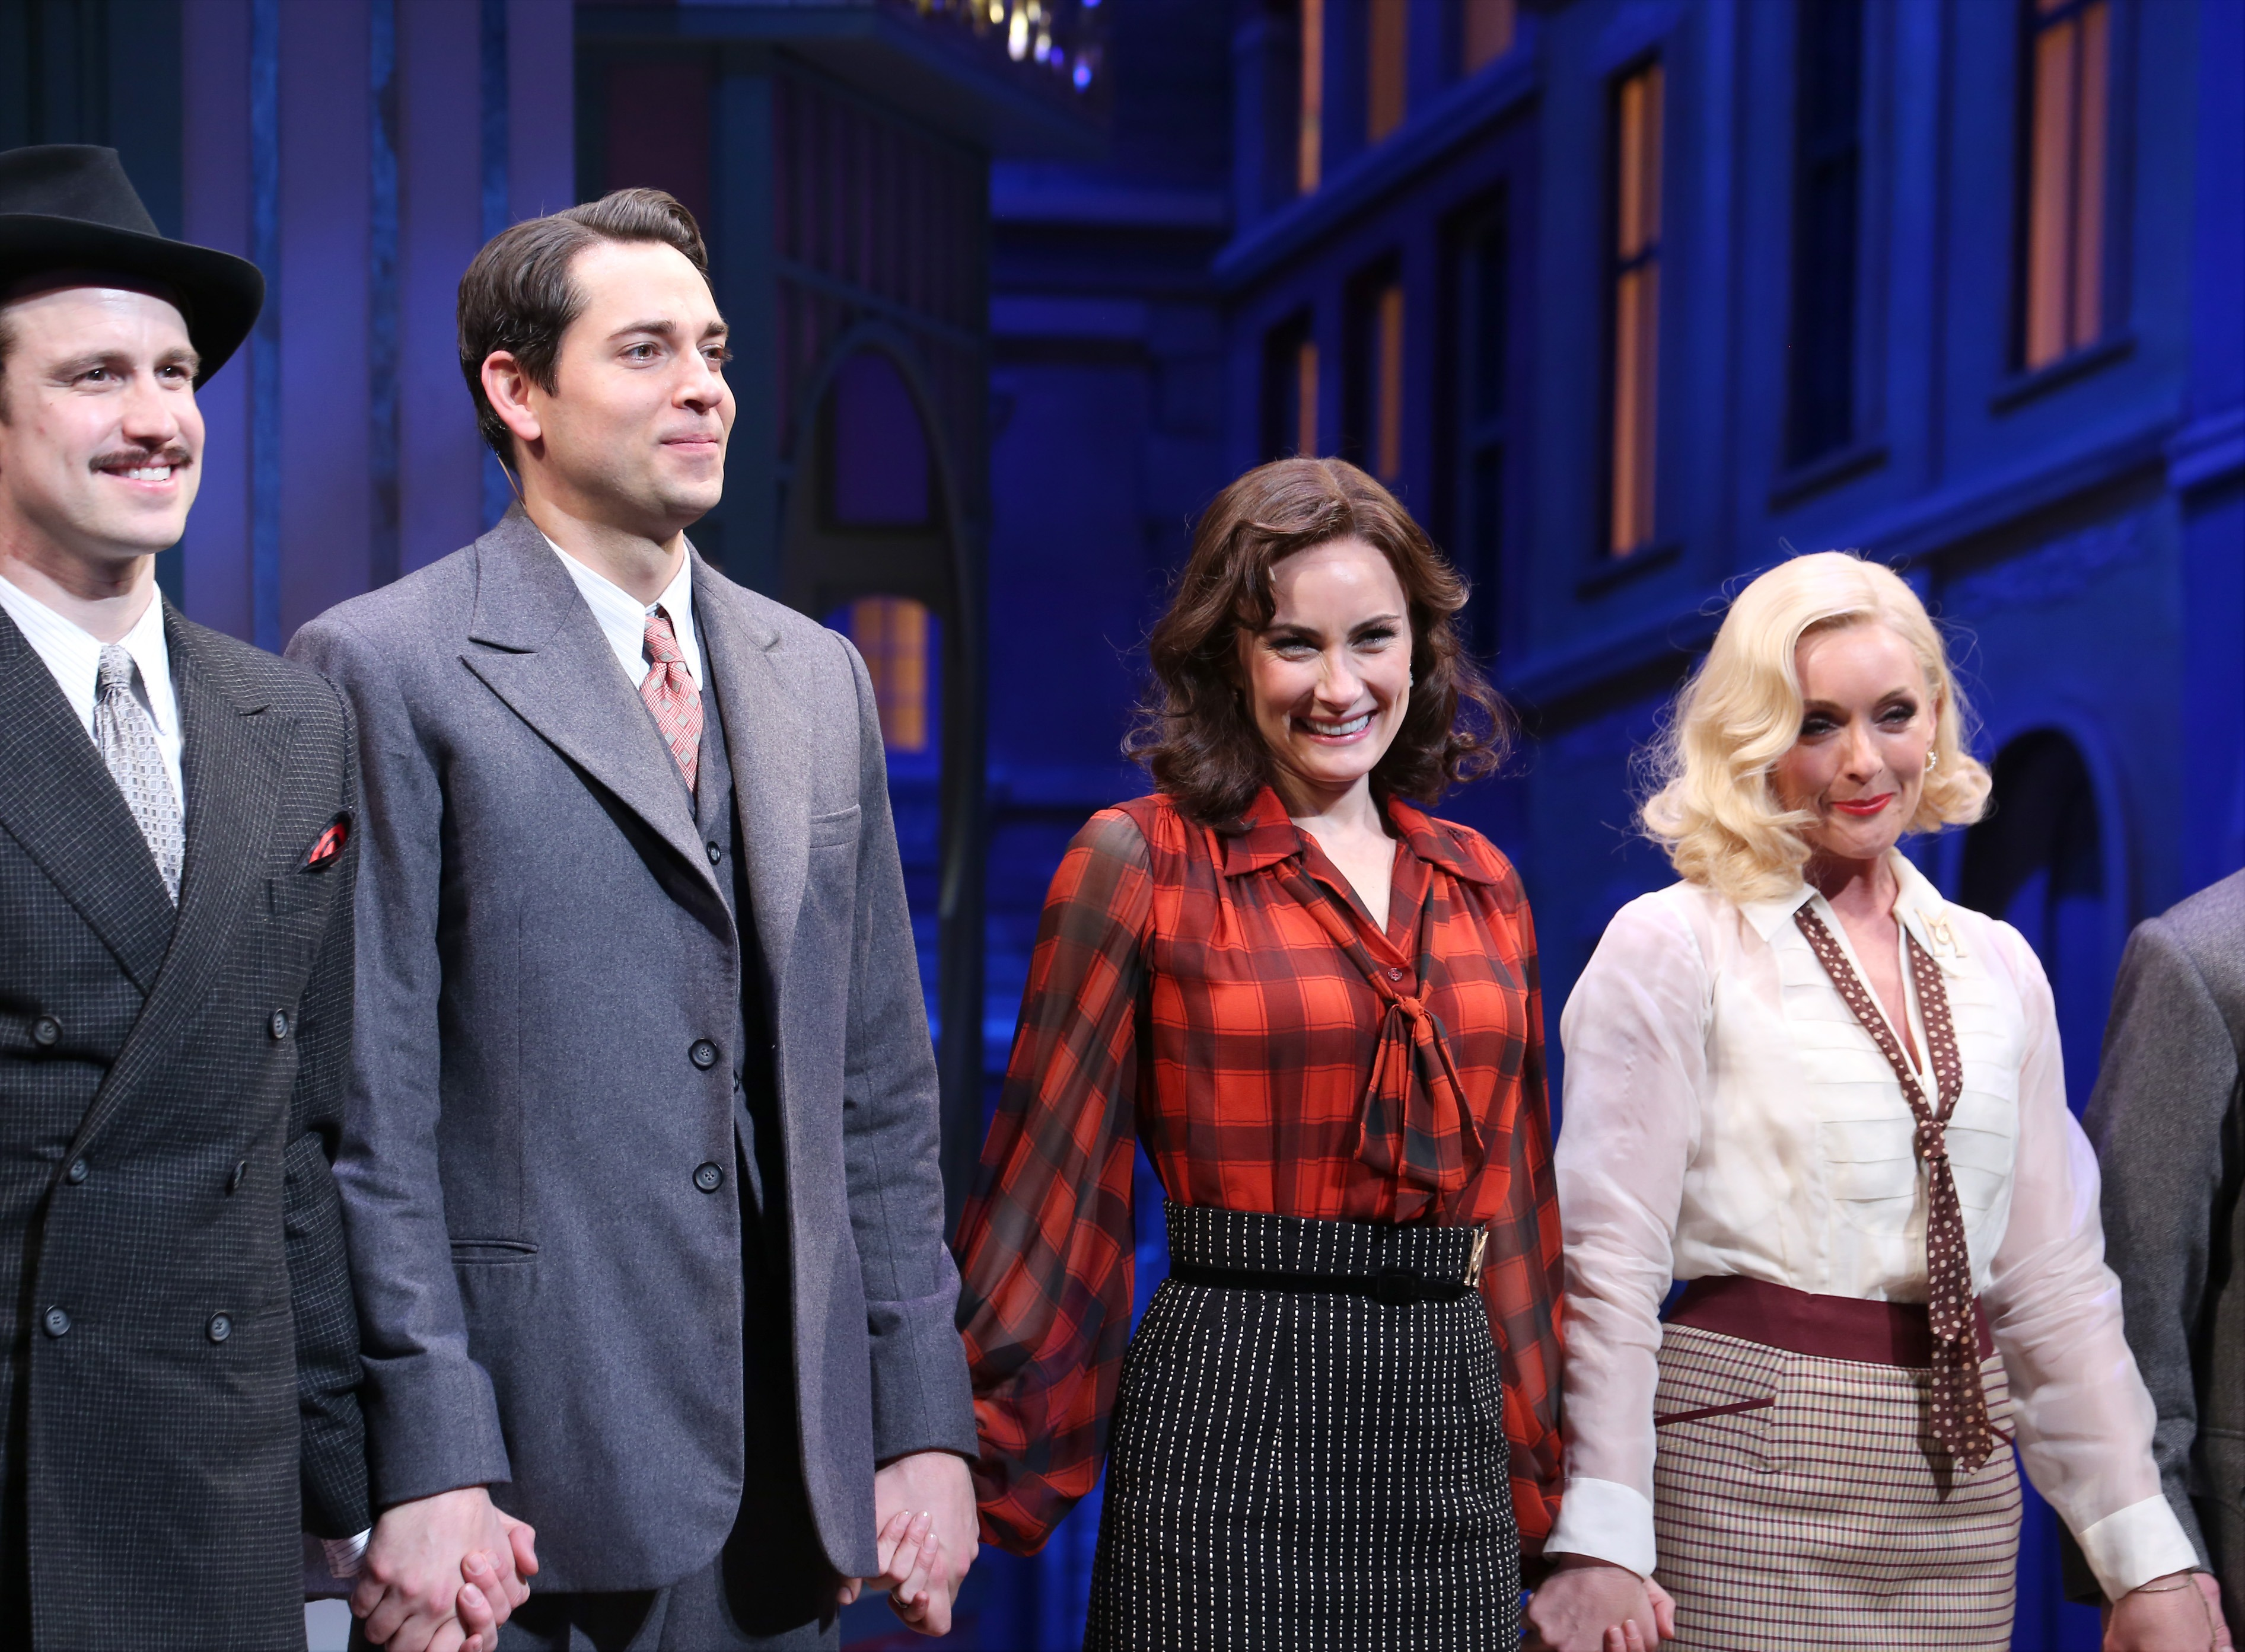 Gavin Creel, Zachary Levi, Laura Benanti, Jane Krakowski during the Broadway Opening Night Performance curtain call bows for 'She Loves Me' at Studio 54 on March 17, 2016 in New York City.